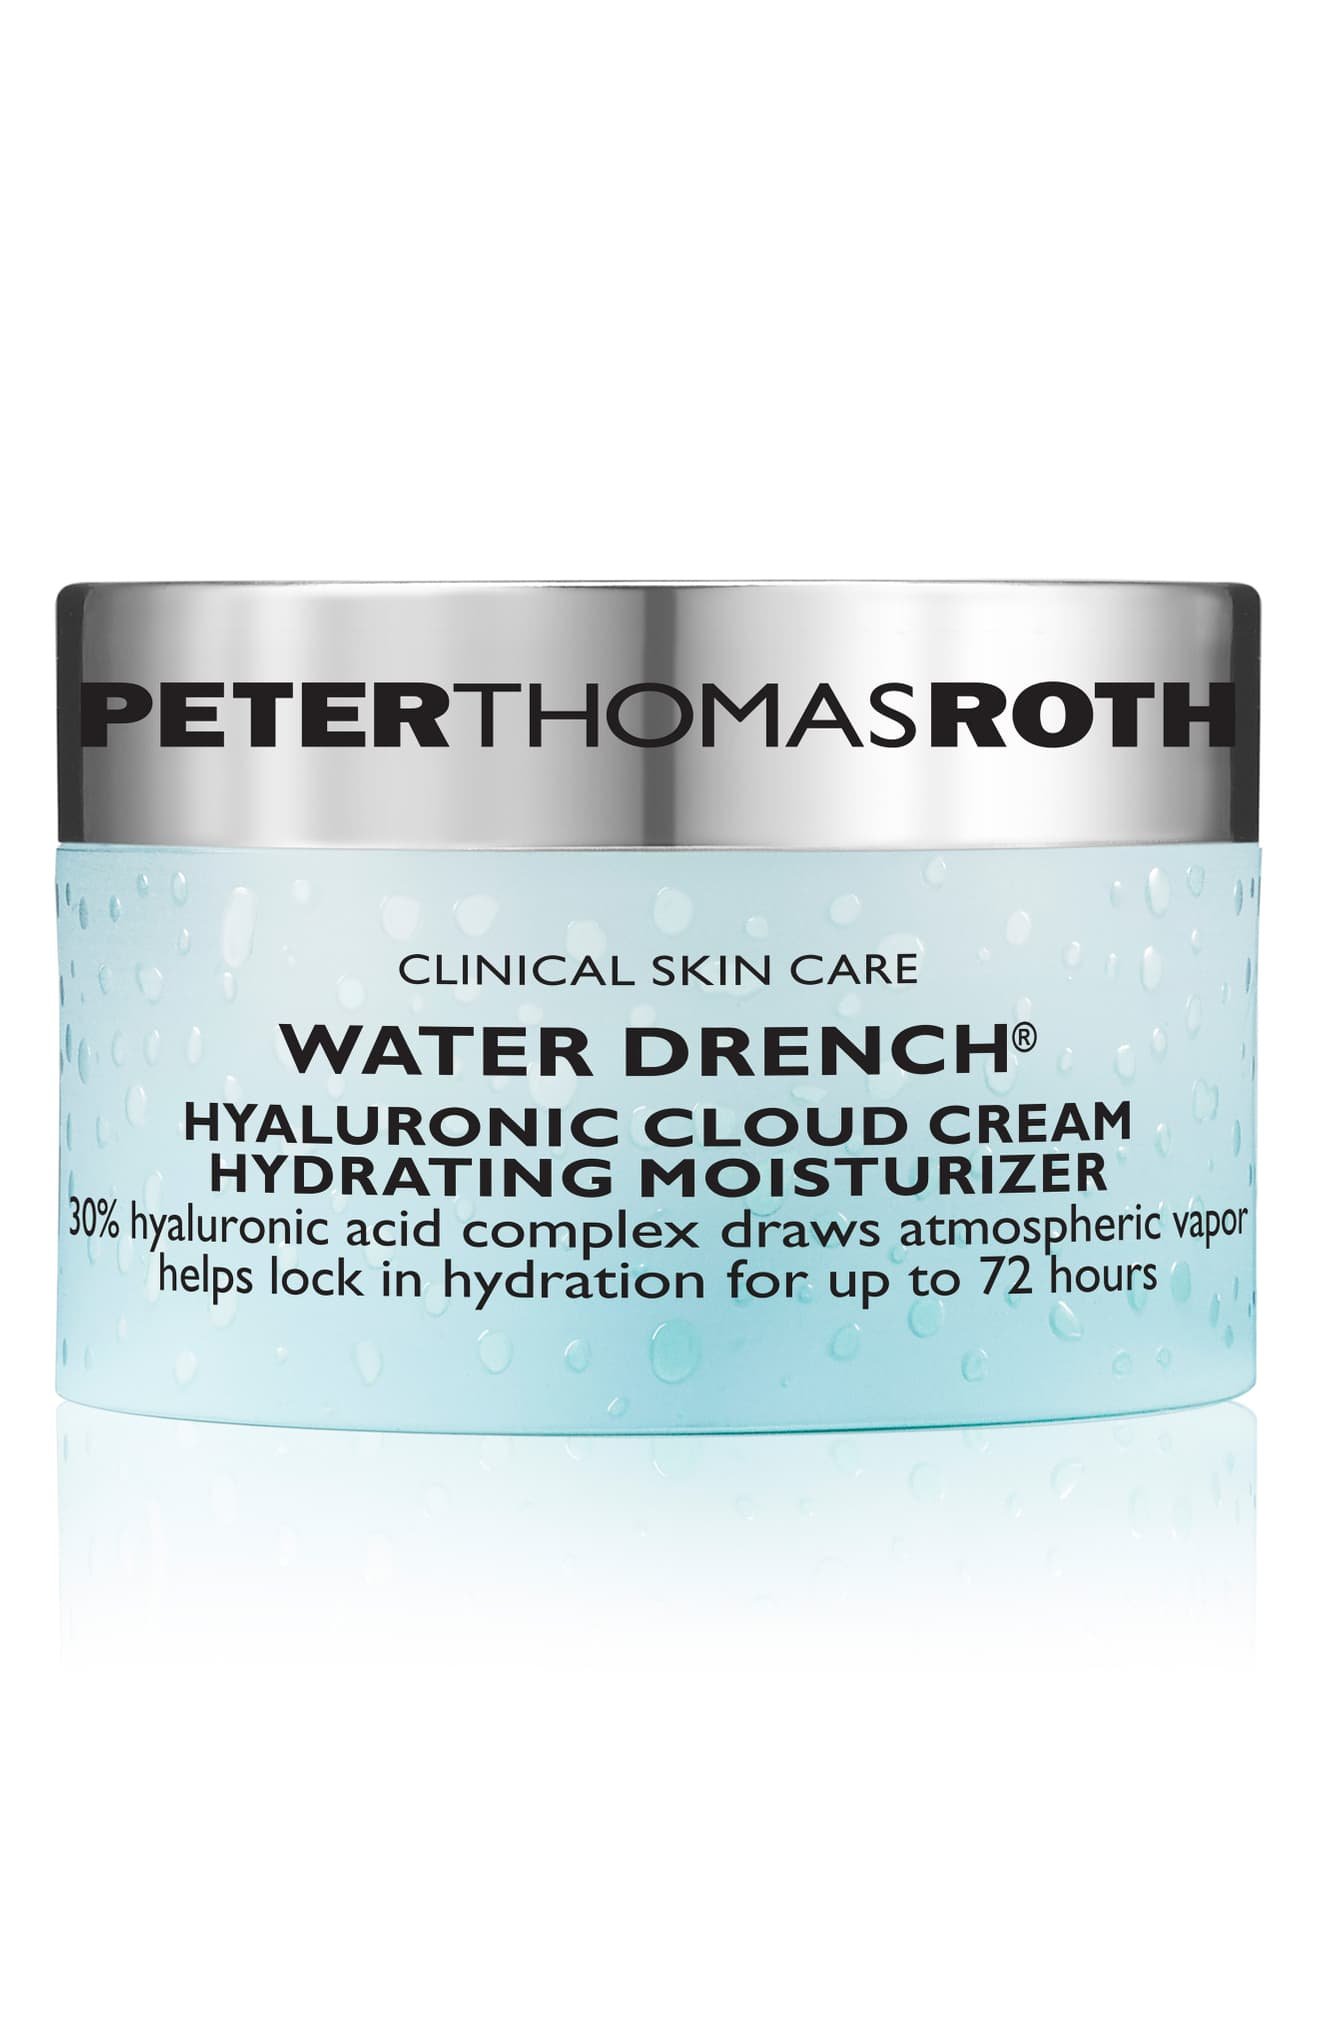 PETER THOMAS ROTH Water Drench Hyaluronic Acid Cloud Cream Hydrating Moisturizer